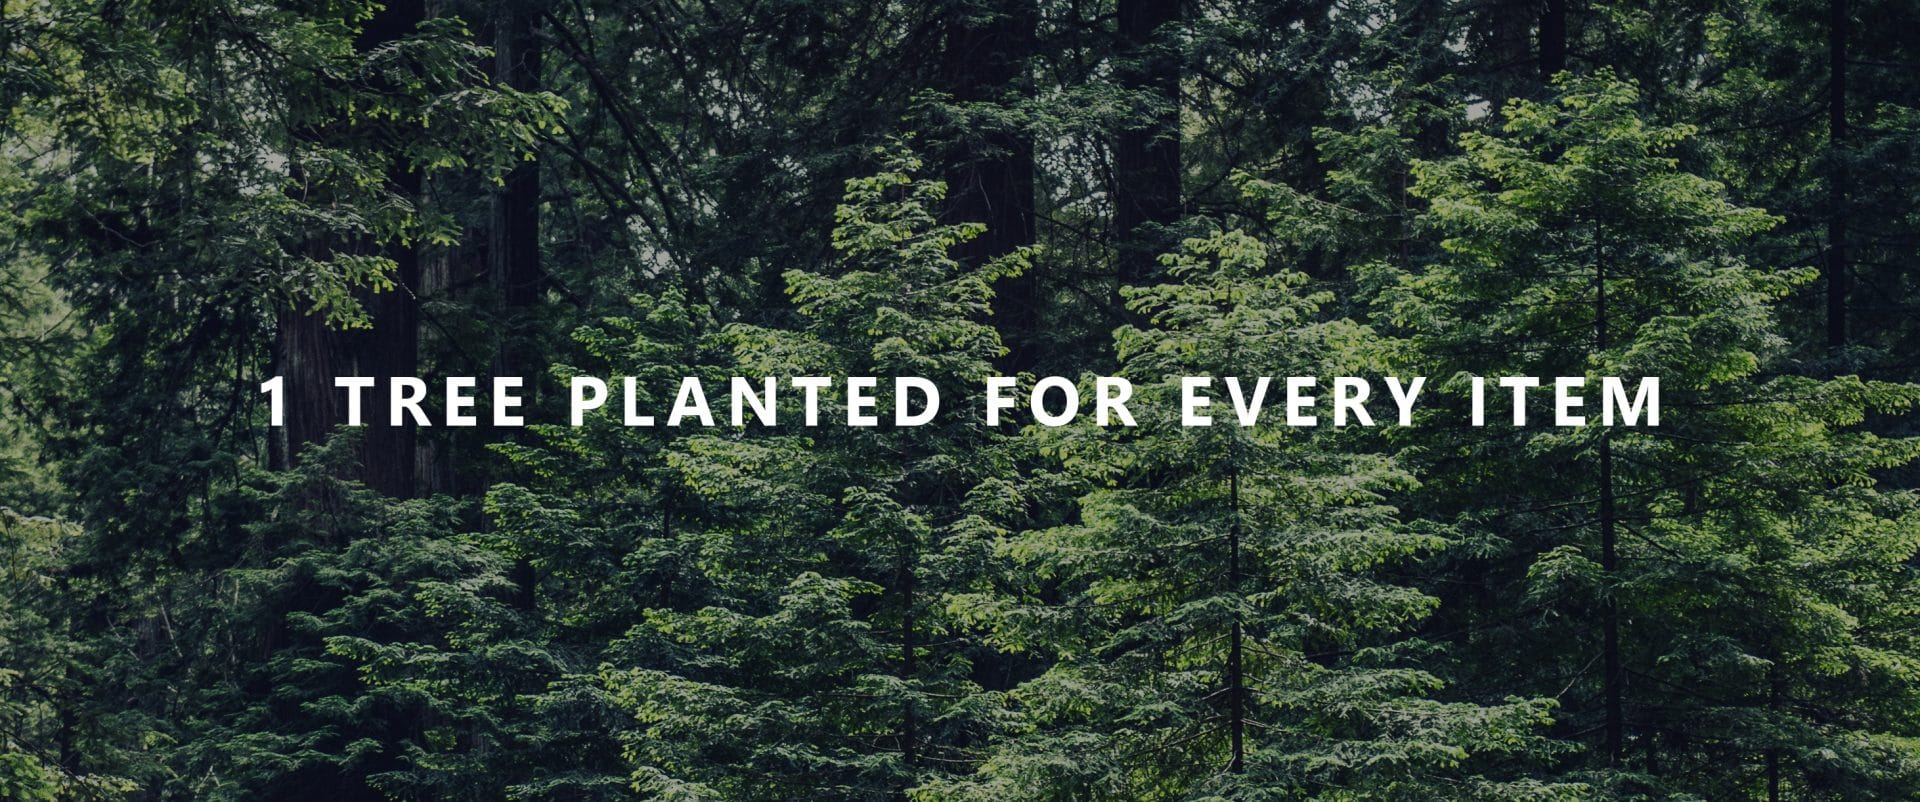 1 tree planted for every item